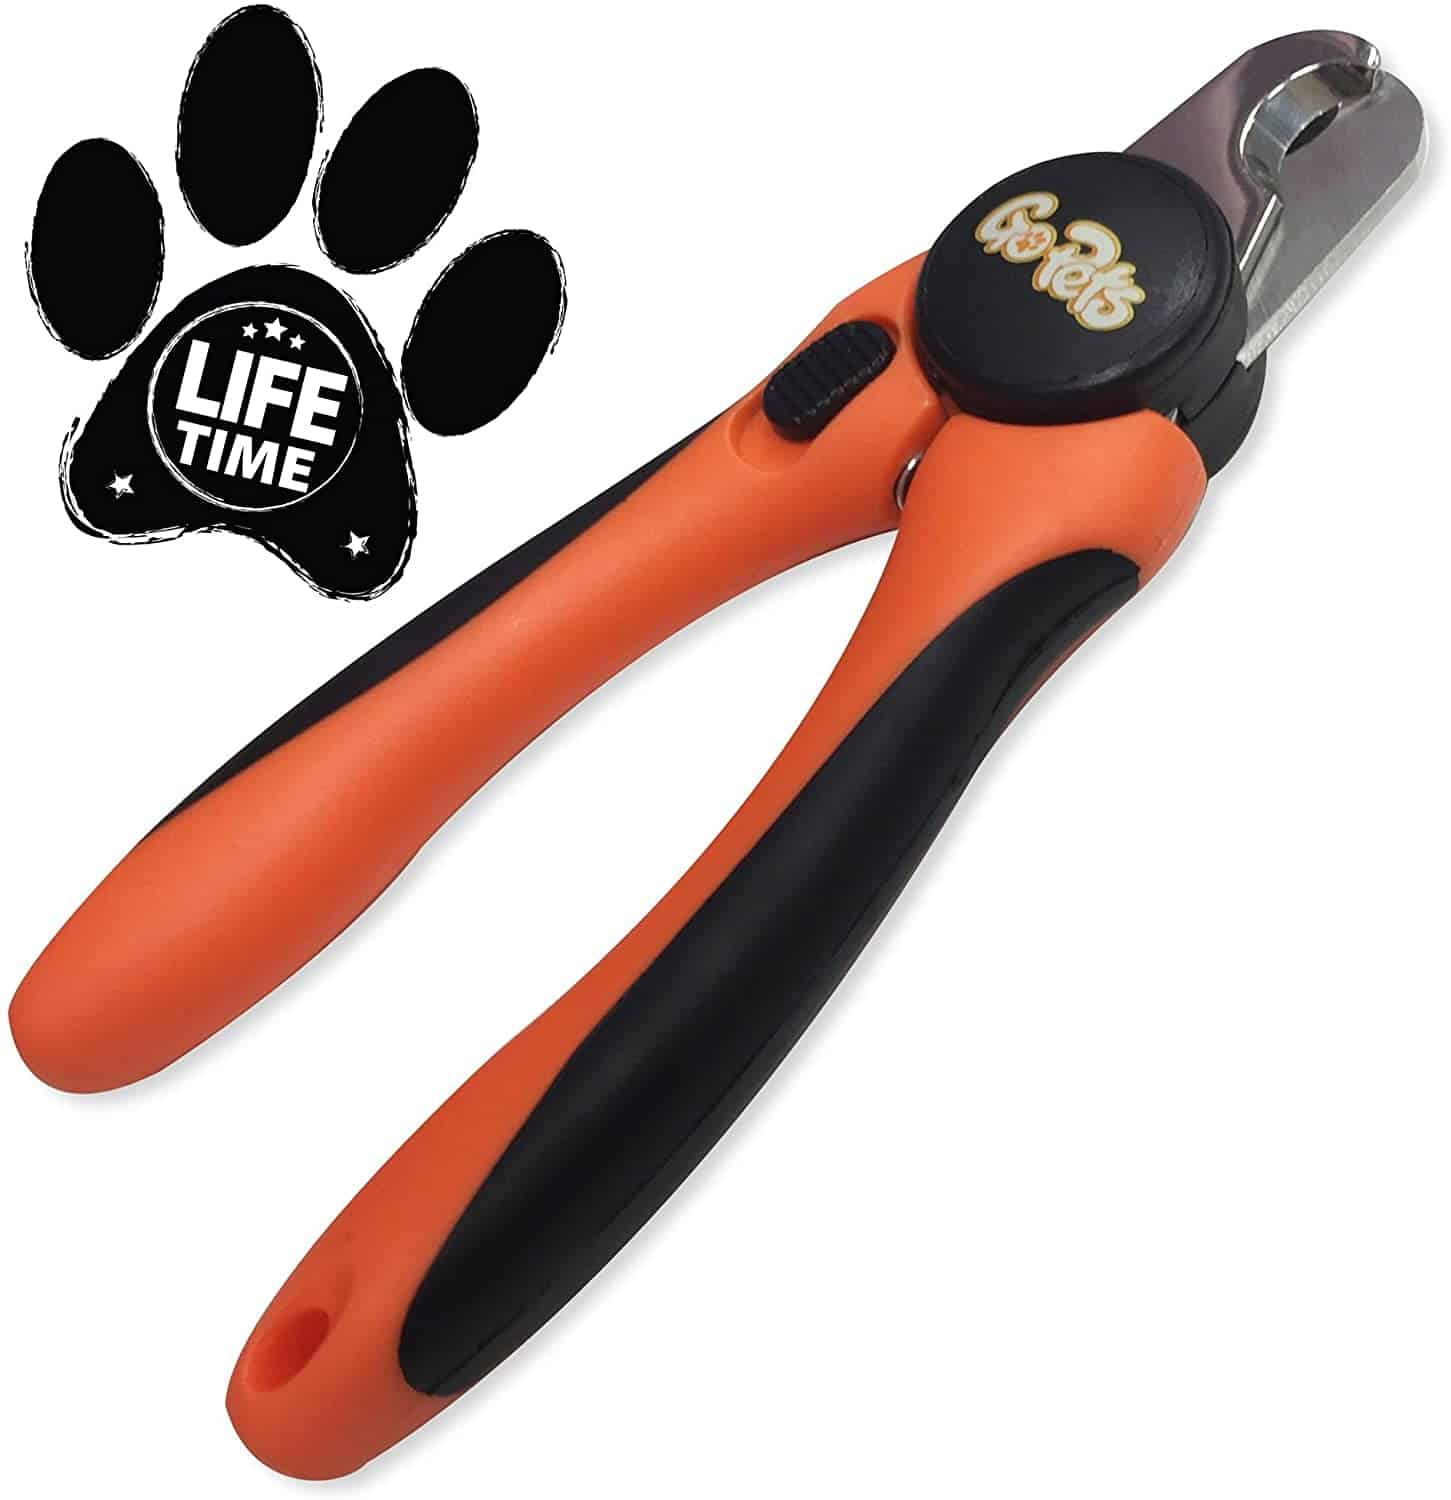 12 Best Cat Nail Clippers And Claw Trimmers Reviews For Your Feline 7